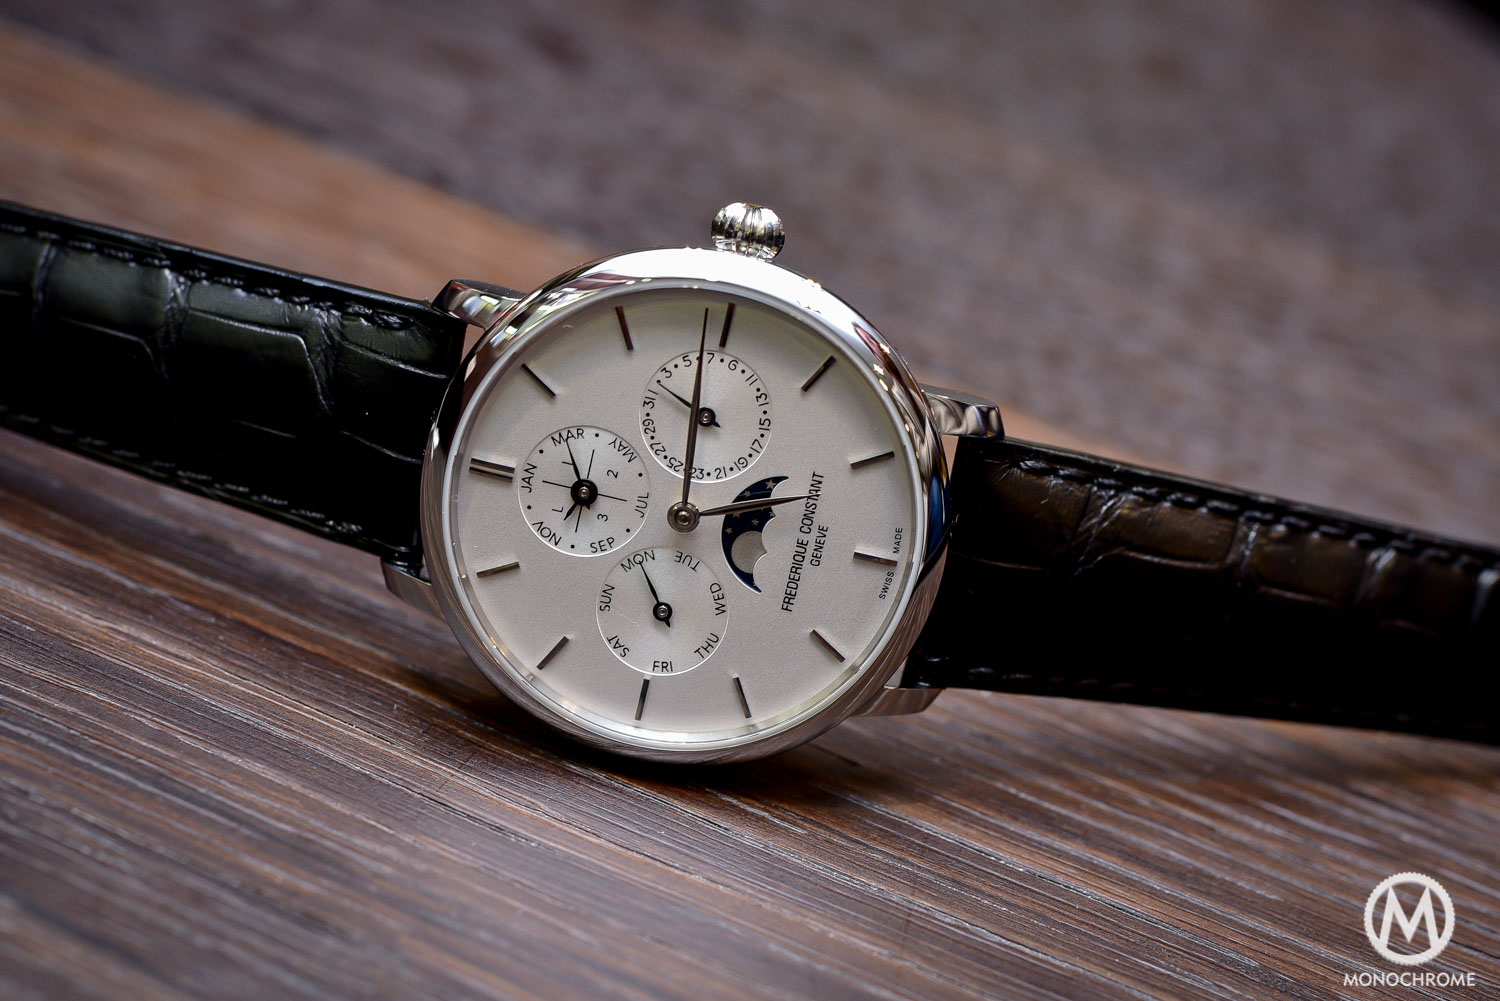 Hands-on review - Frederique Constant Manufacture Perpetual Calendar, a QP priced under €8,000